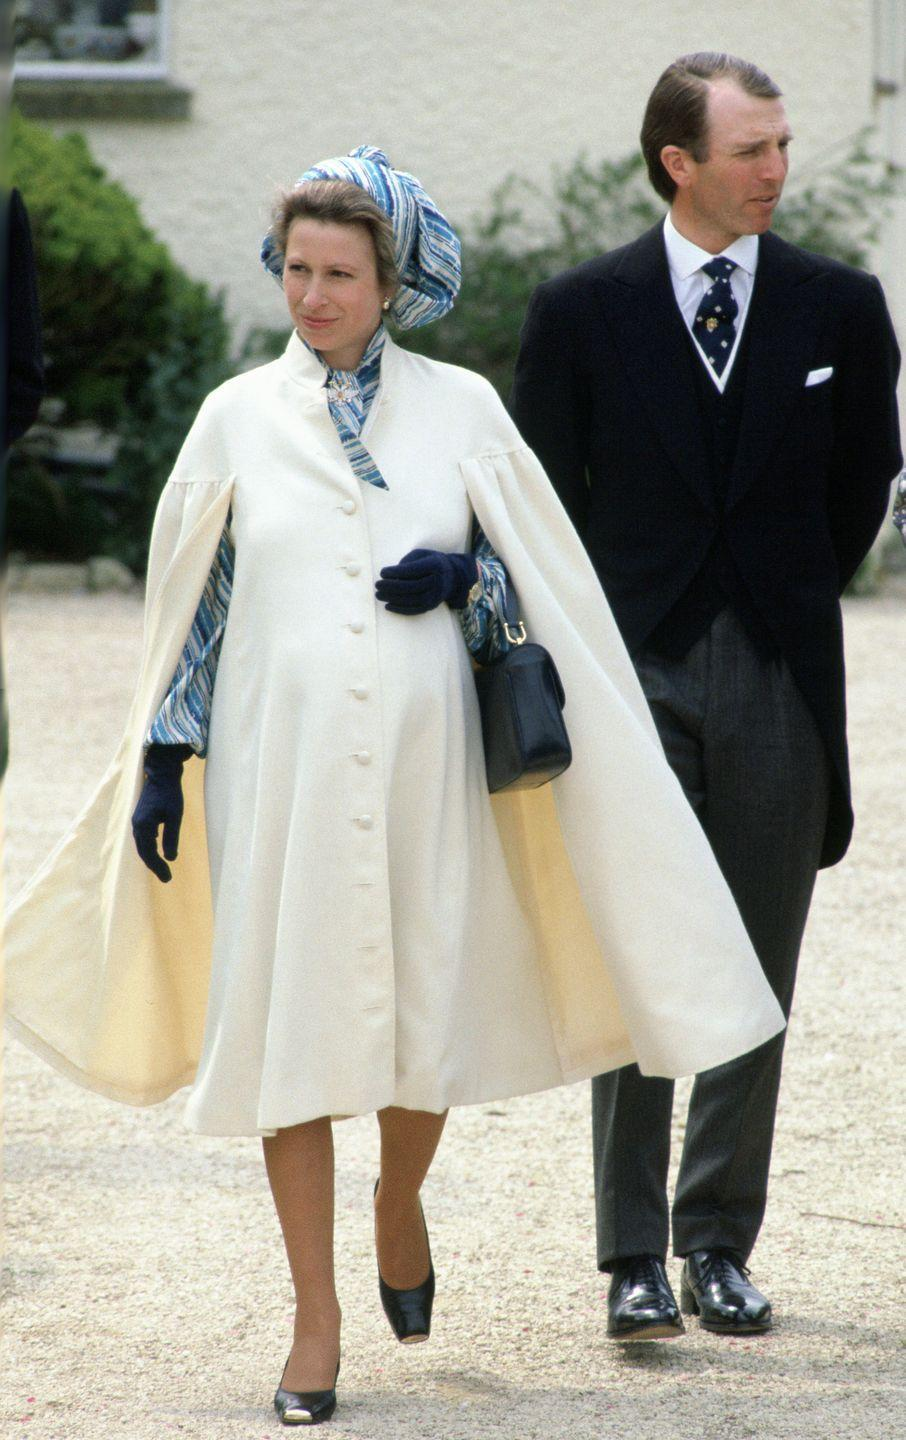 <p>Enter the 1980s: When everything was taken to extremes. Extreme volume, extreme proportions, extreme shapelessness. Princess Anne managed to avoid the common pitfalls of the decade's style in an elegant, oversized cape.</p>